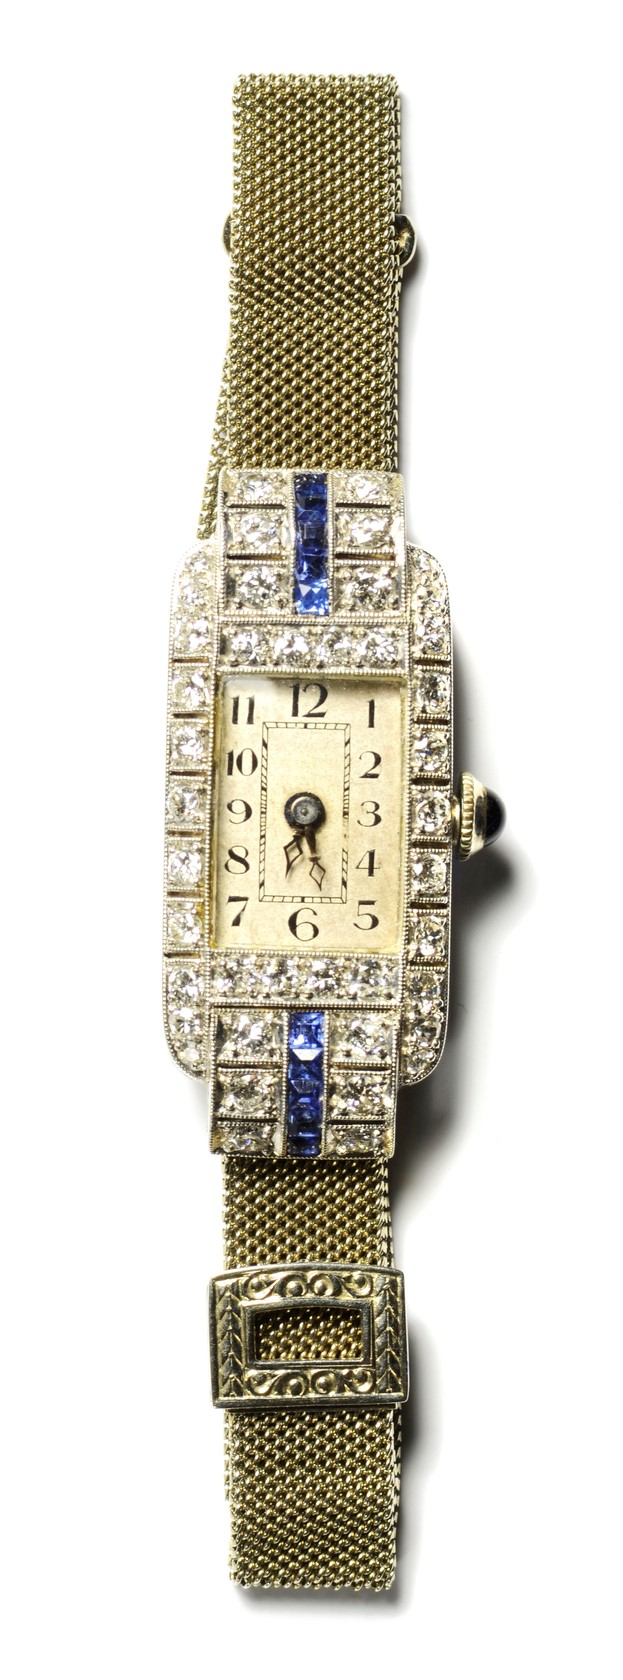 Sell your antique watch